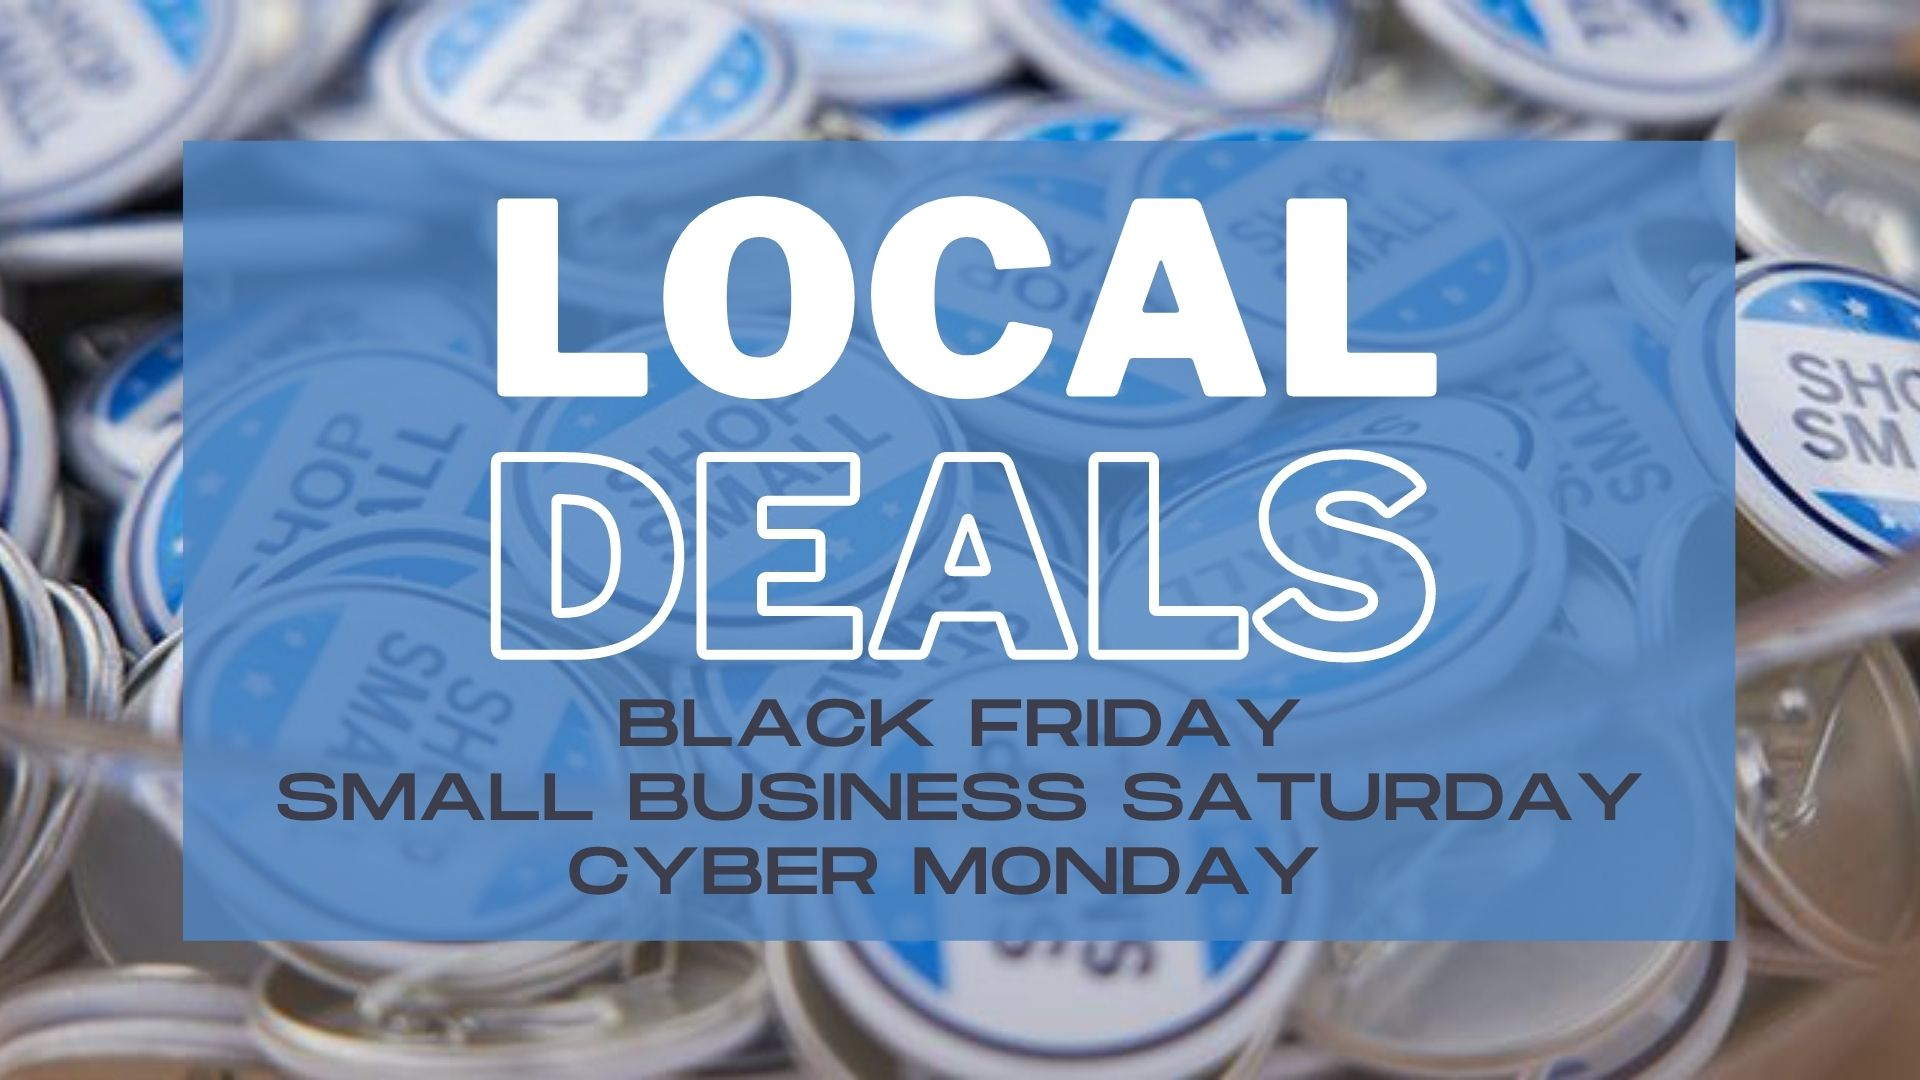 LOCAL Black Friday, Small Business Saturday, Cyber Monday Deals in Raleigh